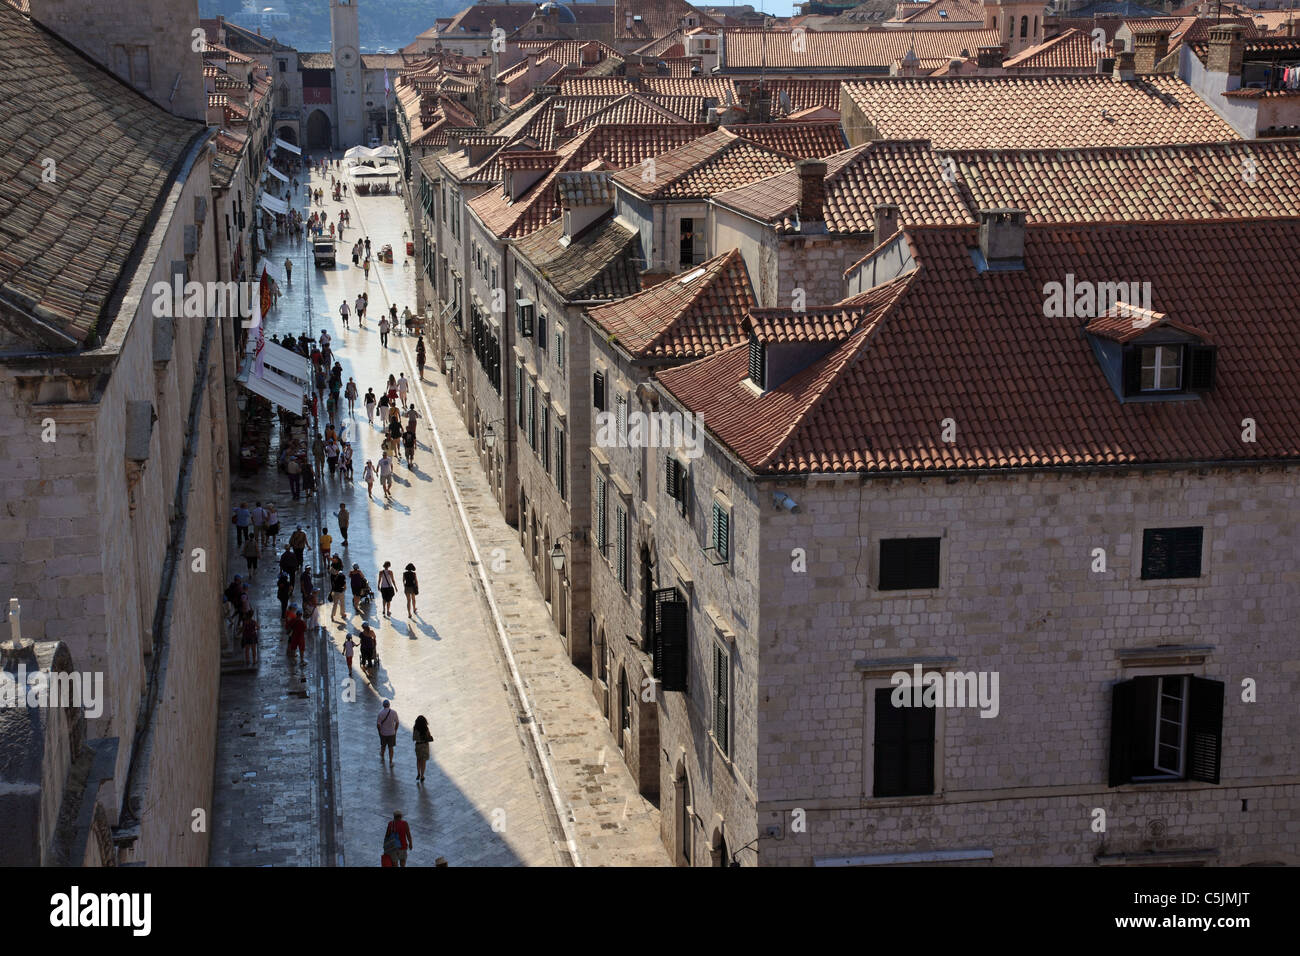 The Stradun, Dubrovnik, Croatia as viewed from the city walls - Stock Image